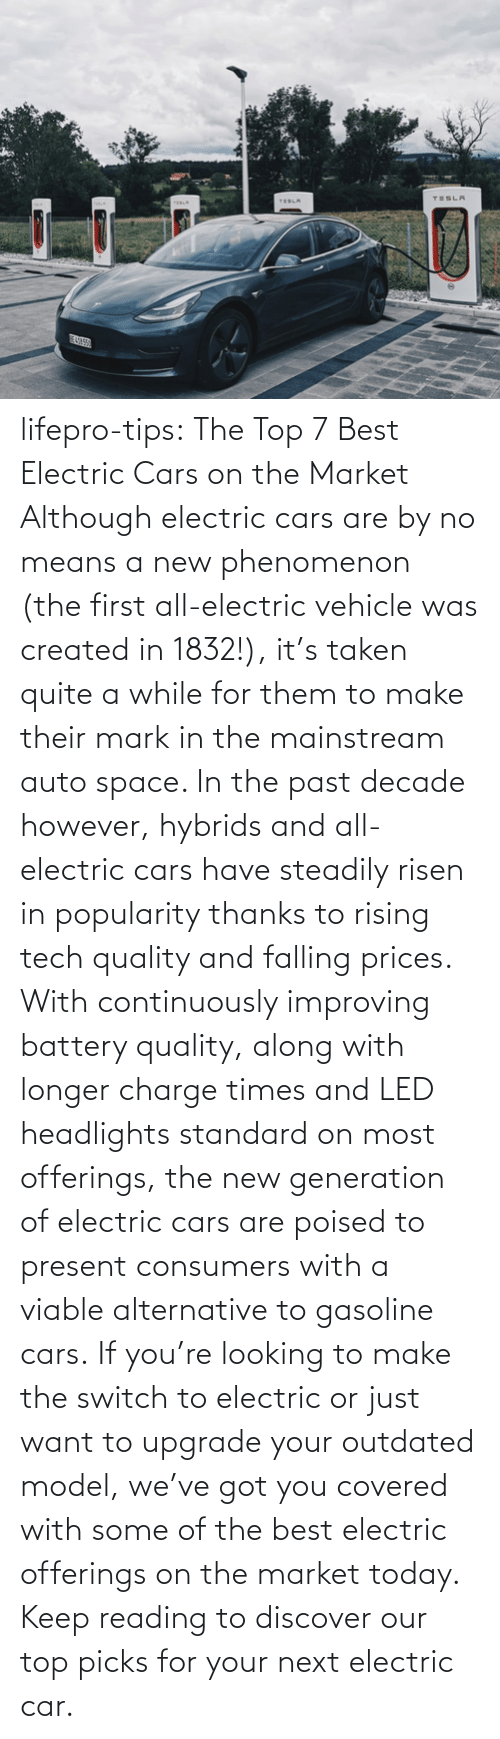 Outdated: lifepro-tips: The Top 7 Best Electric Cars on the Market   Although electric cars are by no means a new phenomenon (the first all-electric vehicle was created in 1832!), it's taken quite a while for them to make their mark in the mainstream auto space. In the past decade however, hybrids and all-electric cars have steadily risen in popularity thanks to rising tech quality and falling prices. With continuously improving battery quality, along with longer charge times and LED headlights standard on most offerings, the new generation of electric cars are poised to present consumers with a viable alternative to gasoline cars. If you're looking to make the switch to electric or just want to upgrade your outdated model, we've got you covered with some of the best electric offerings on the market today. Keep reading to discover our top picks for your next electric car.